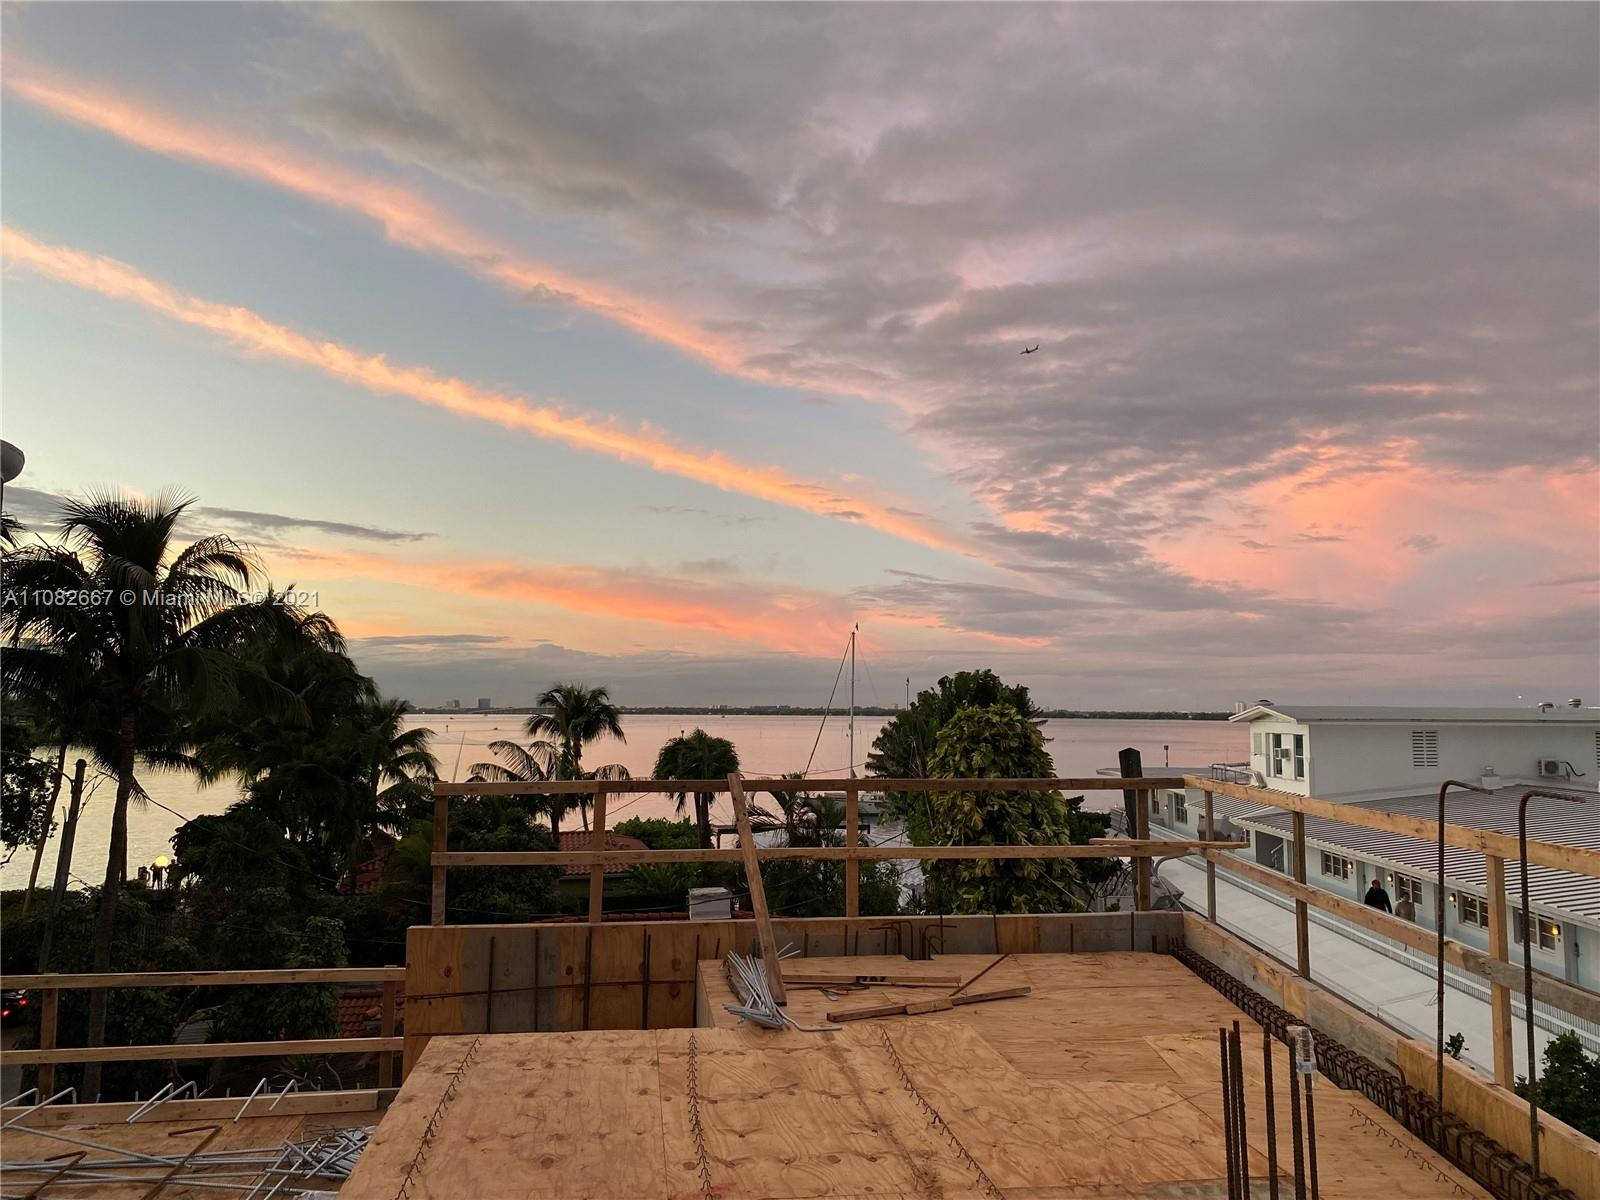 first floor already built !!!  Discount price under construction,   5 floors , elevator , pool at 3rd floor, Ocean view ,  rooftop with barbecue ,fire pit and jacuzzi ,ready summer 2022 ... hurricane category 5 resistant,   2 Master bedroom, Plus Mega master bedroom at 4th floor , laundry room , elevator